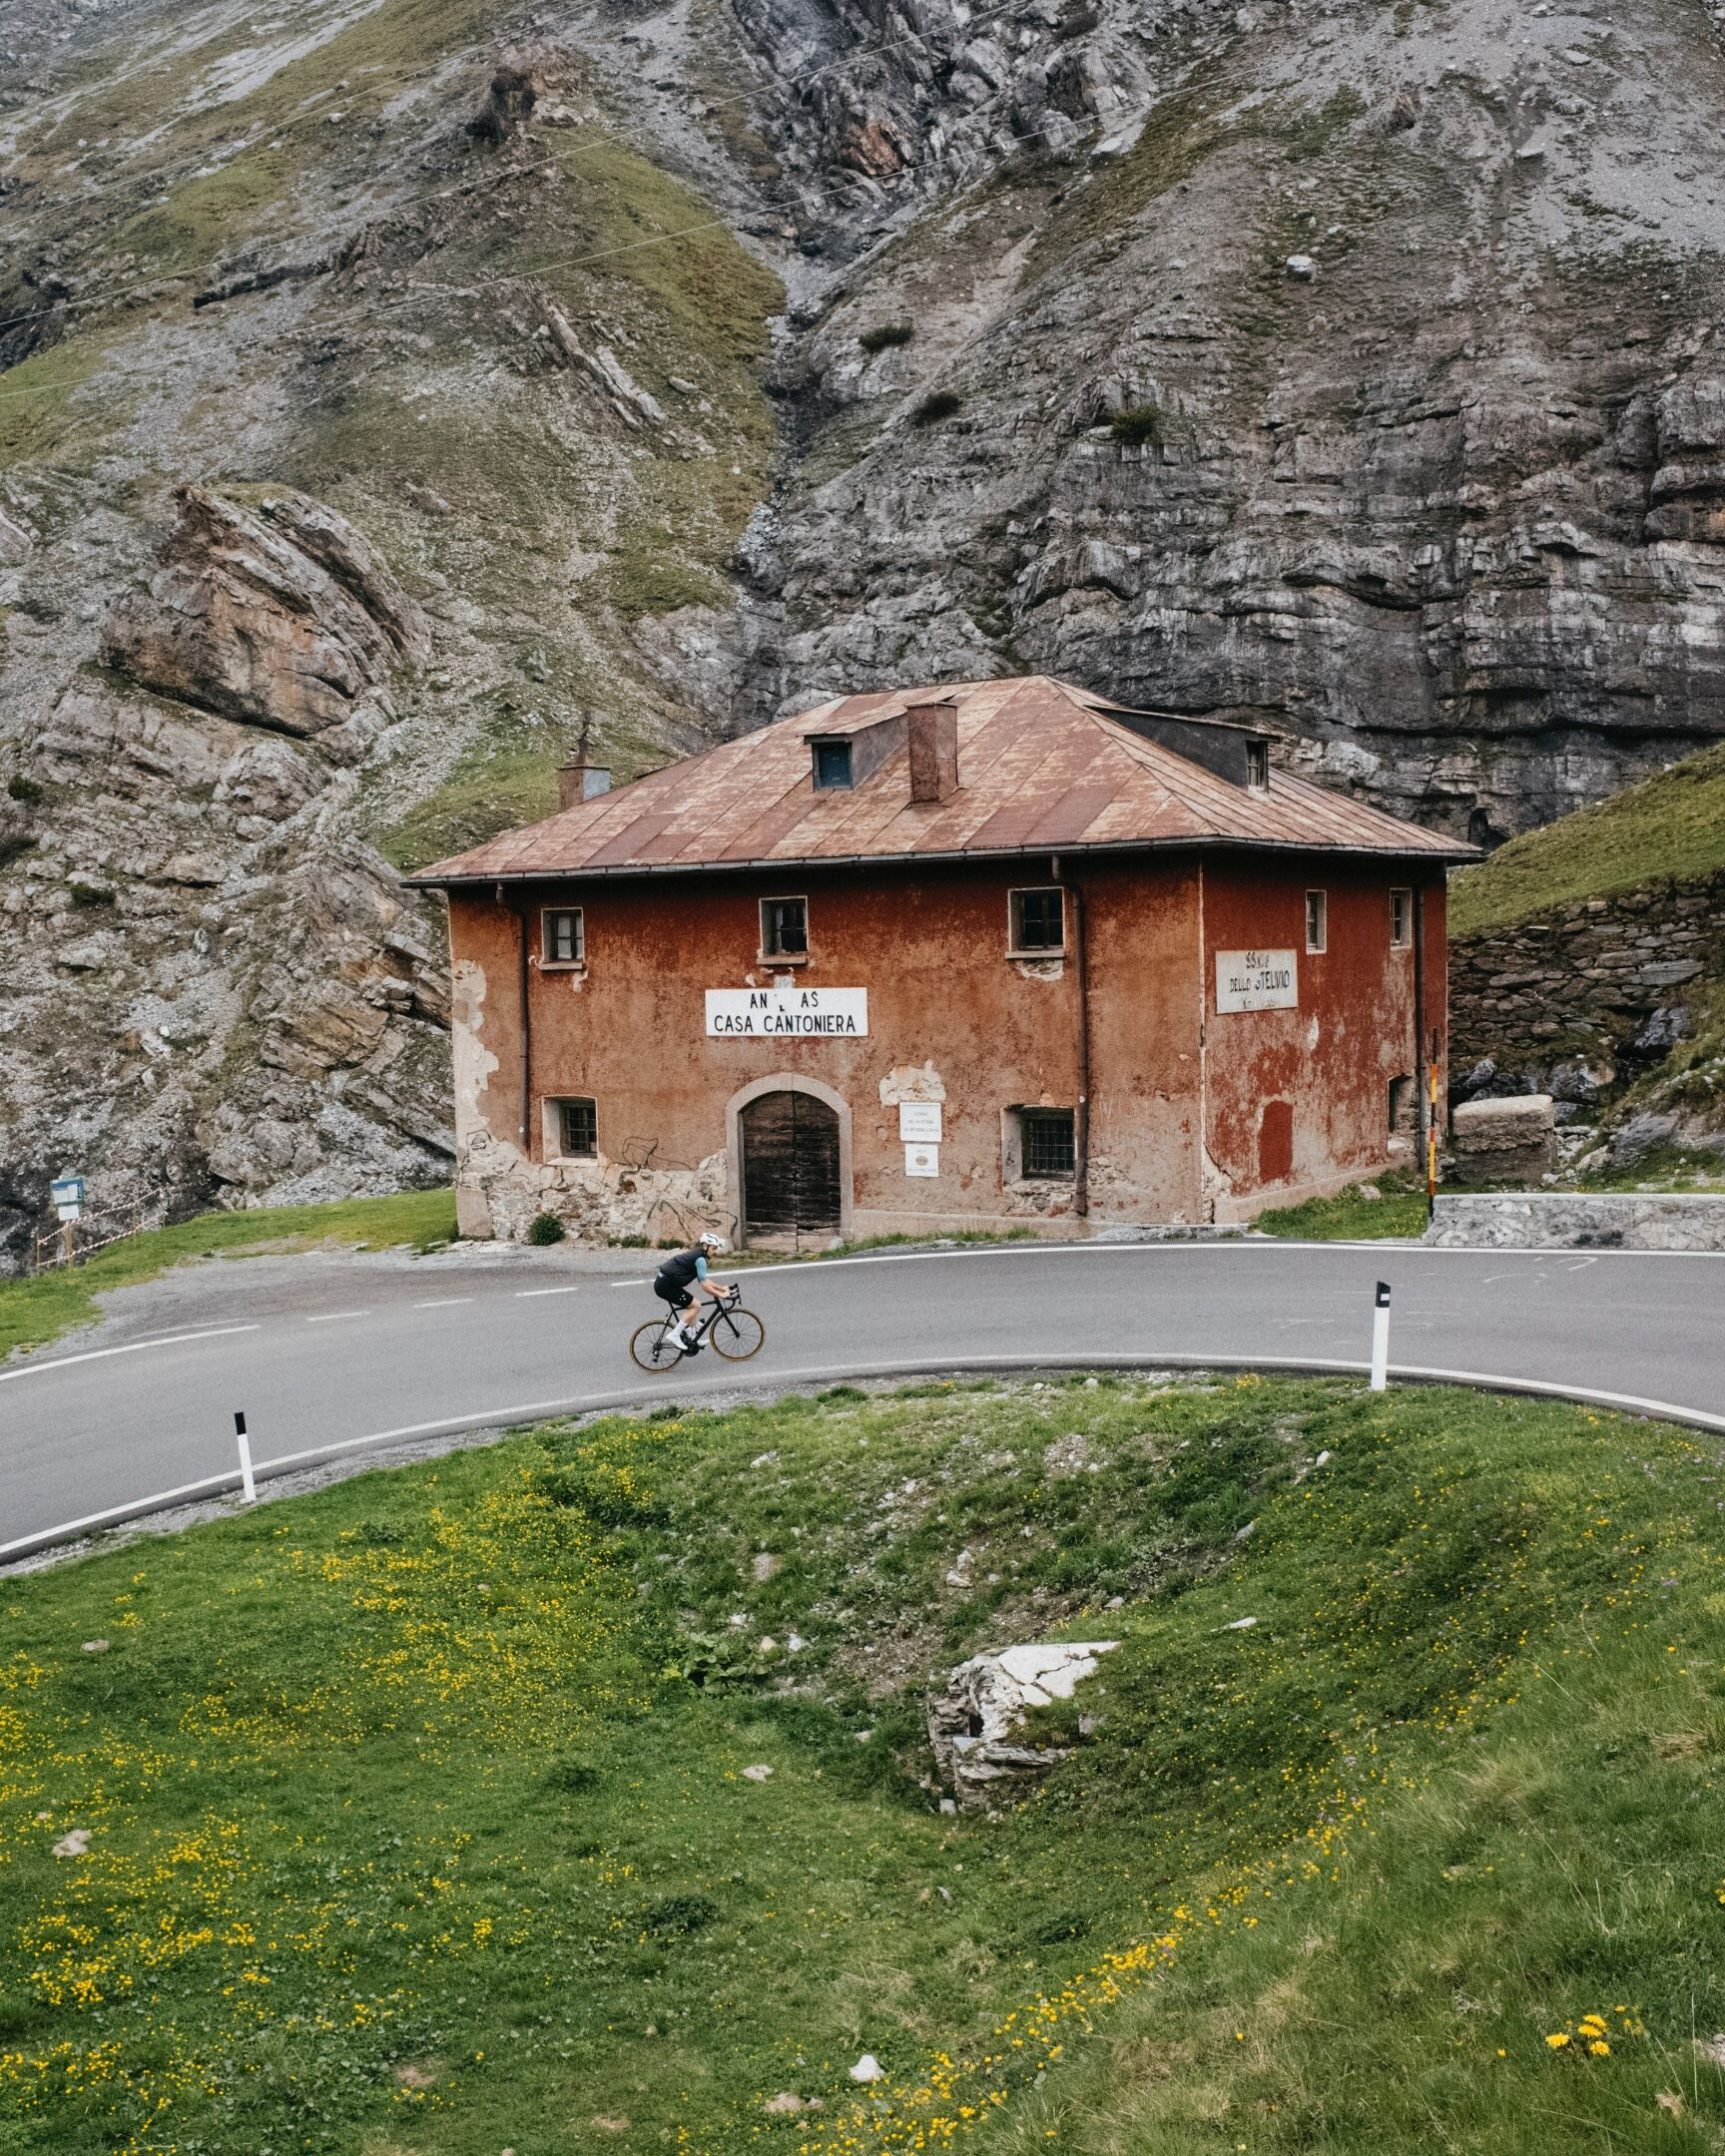 """- """"After crashing out and getting picked up by the guys, accompanying the group up the Stelvio as a Soigneur offered a completely new view on the sport that I love. I felt like part of a team more than ever."""" - Sebastian Bentzin"""